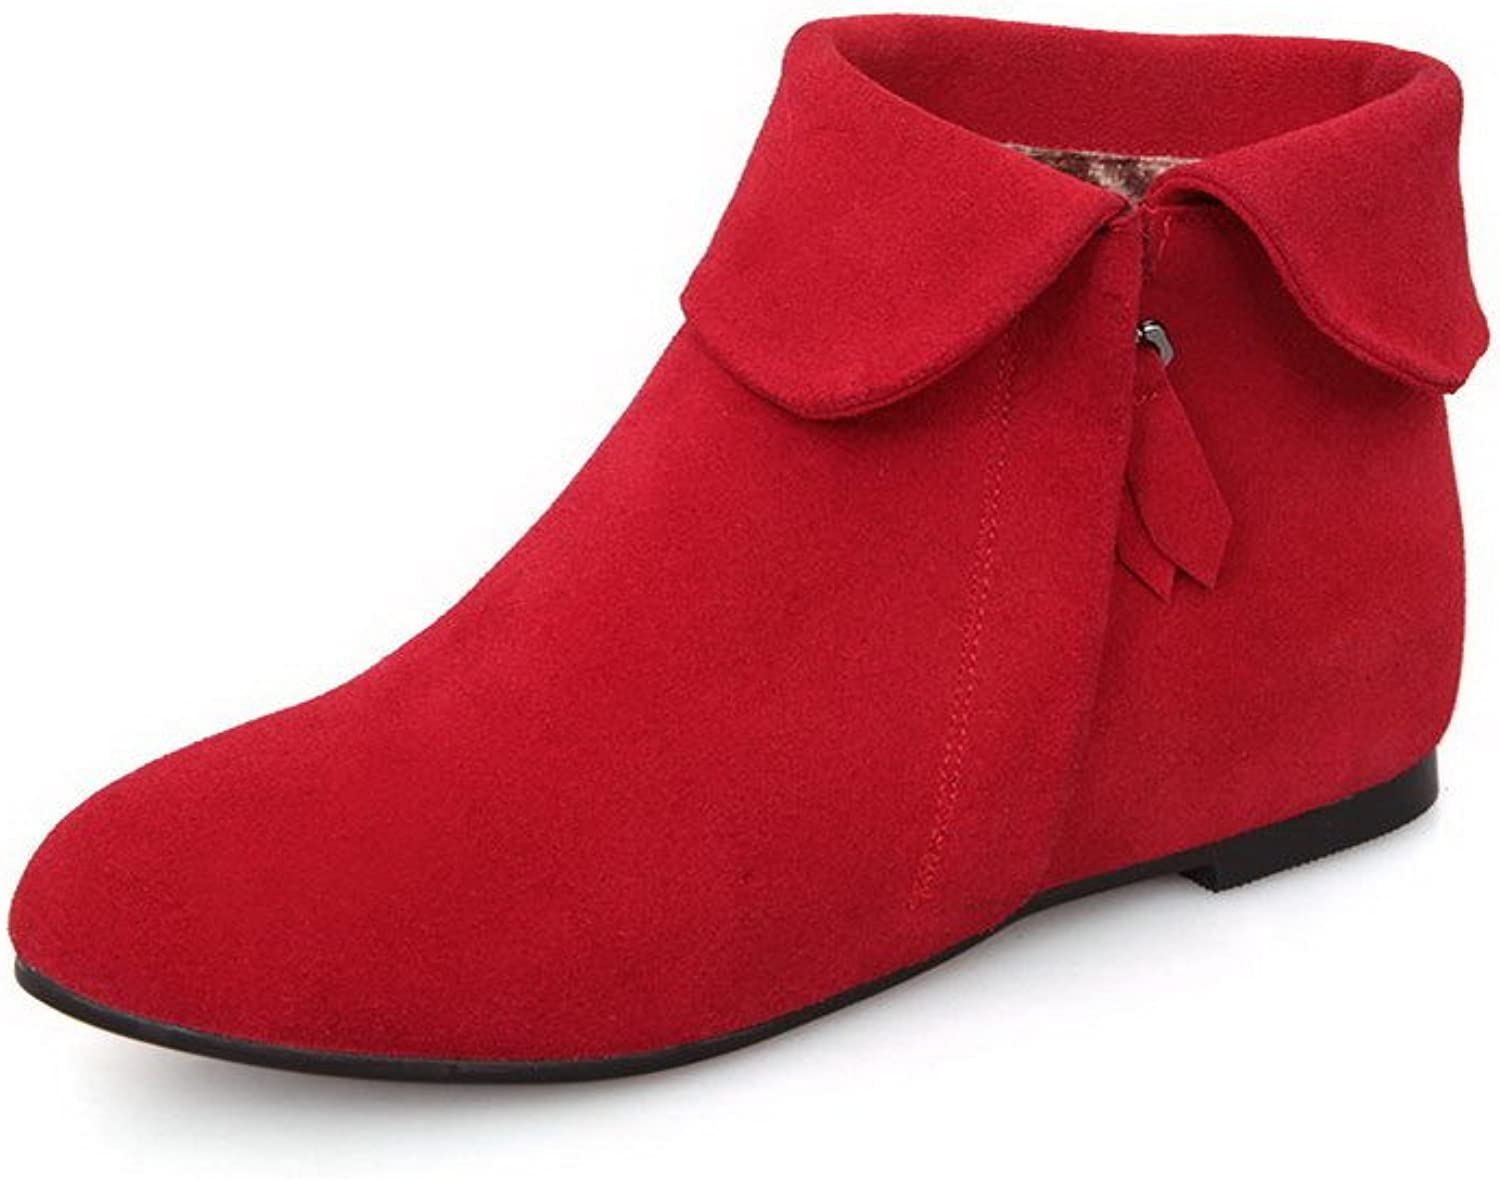 AmoonyFashion Women's Round-Toe Closed-Toe Low-Heels Boot with In Elevator shoes and Slipping Sole